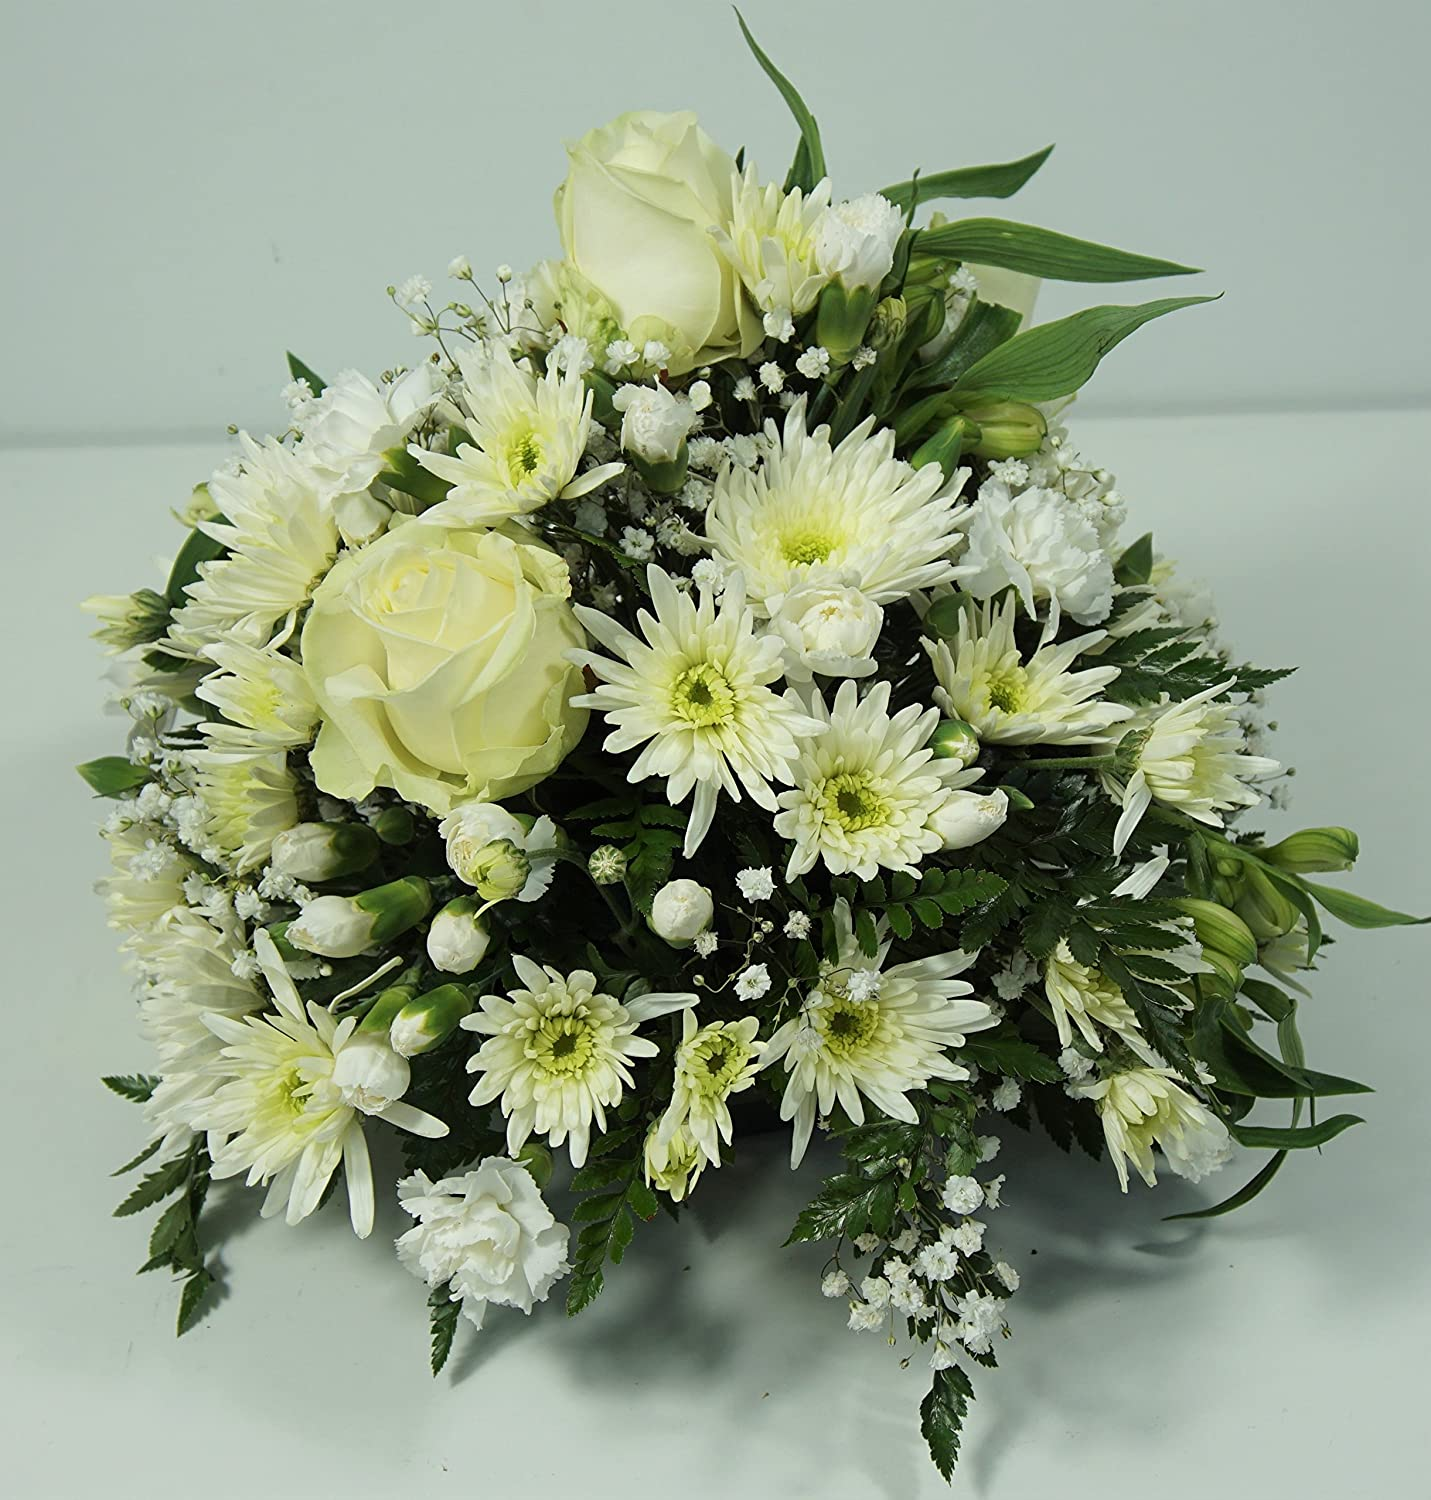 All White Funeral Flower Posy - Delivered Next Day UK FREE in 1hr TimeSlot - Floral Spray Arrangement with Handwritten Card - Send flowers for Sympathy Bereavement or Memorial Service Homeland Florists